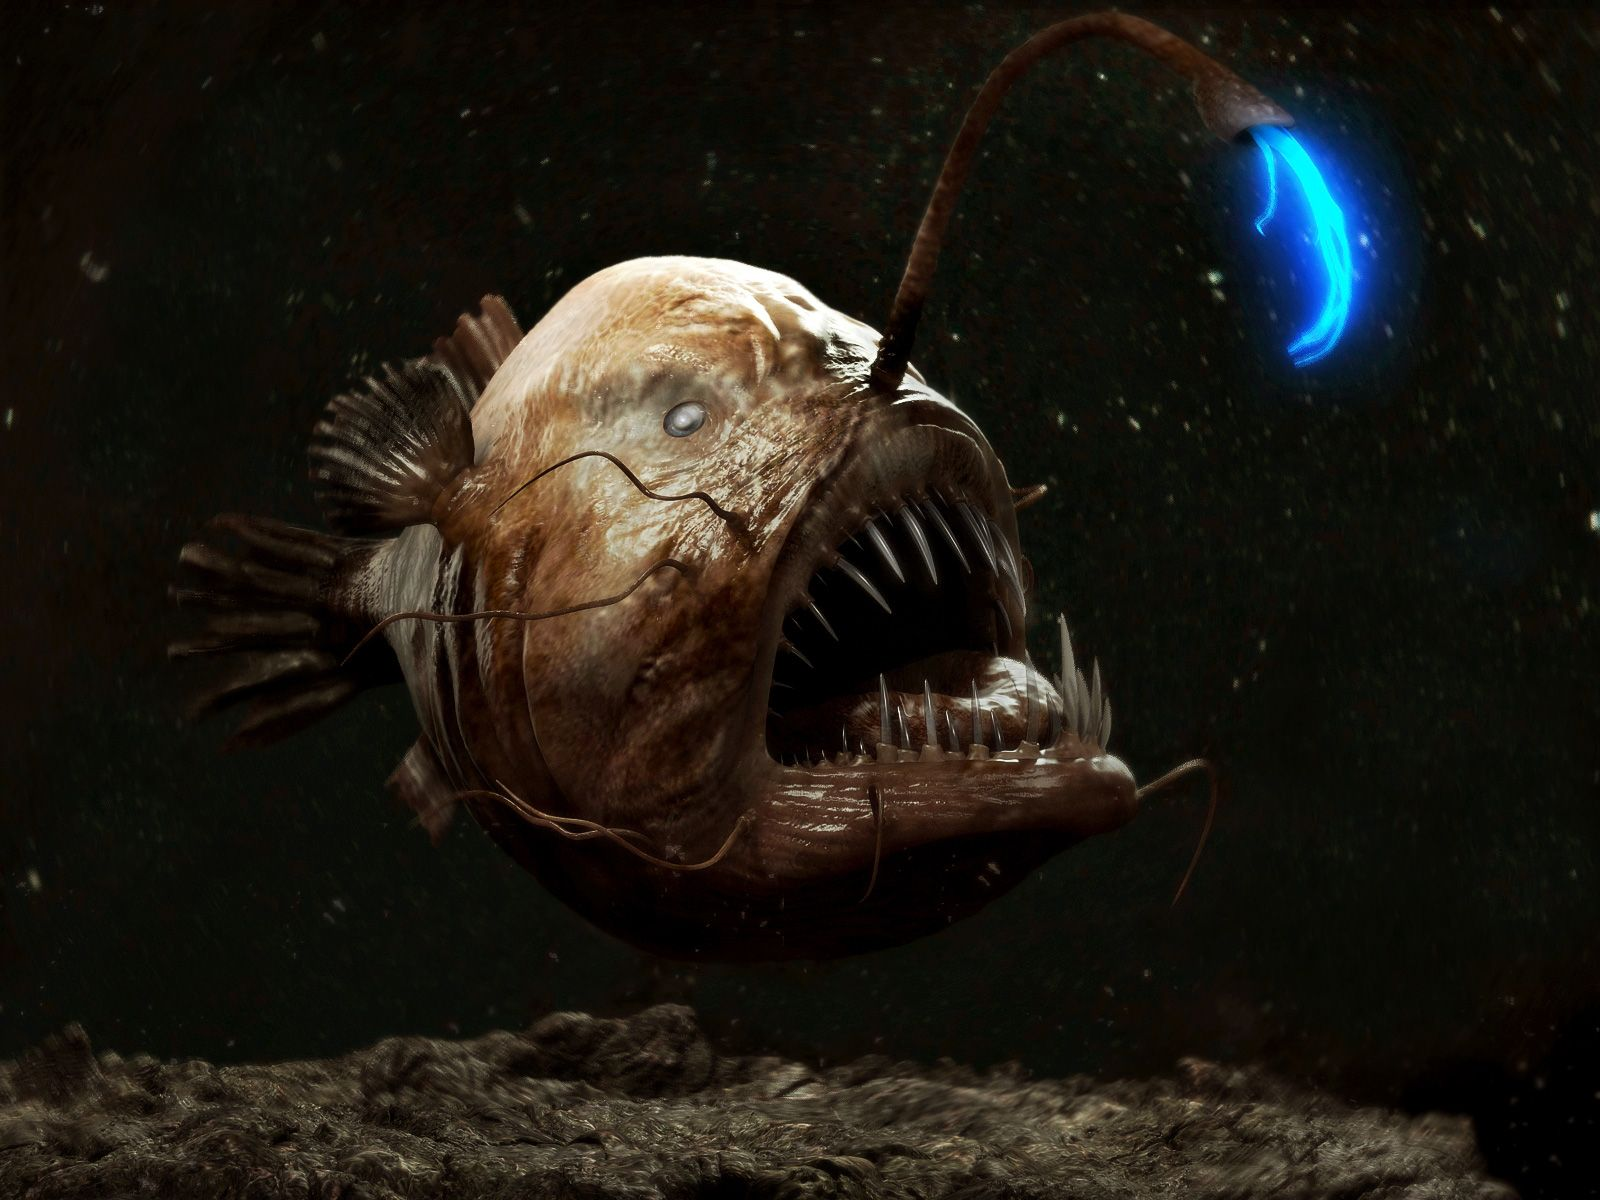 7 Of The Most Frighteningly Bizarre Ocean Creatures | Angler fish ... for Anglerfish Real Life  270bof